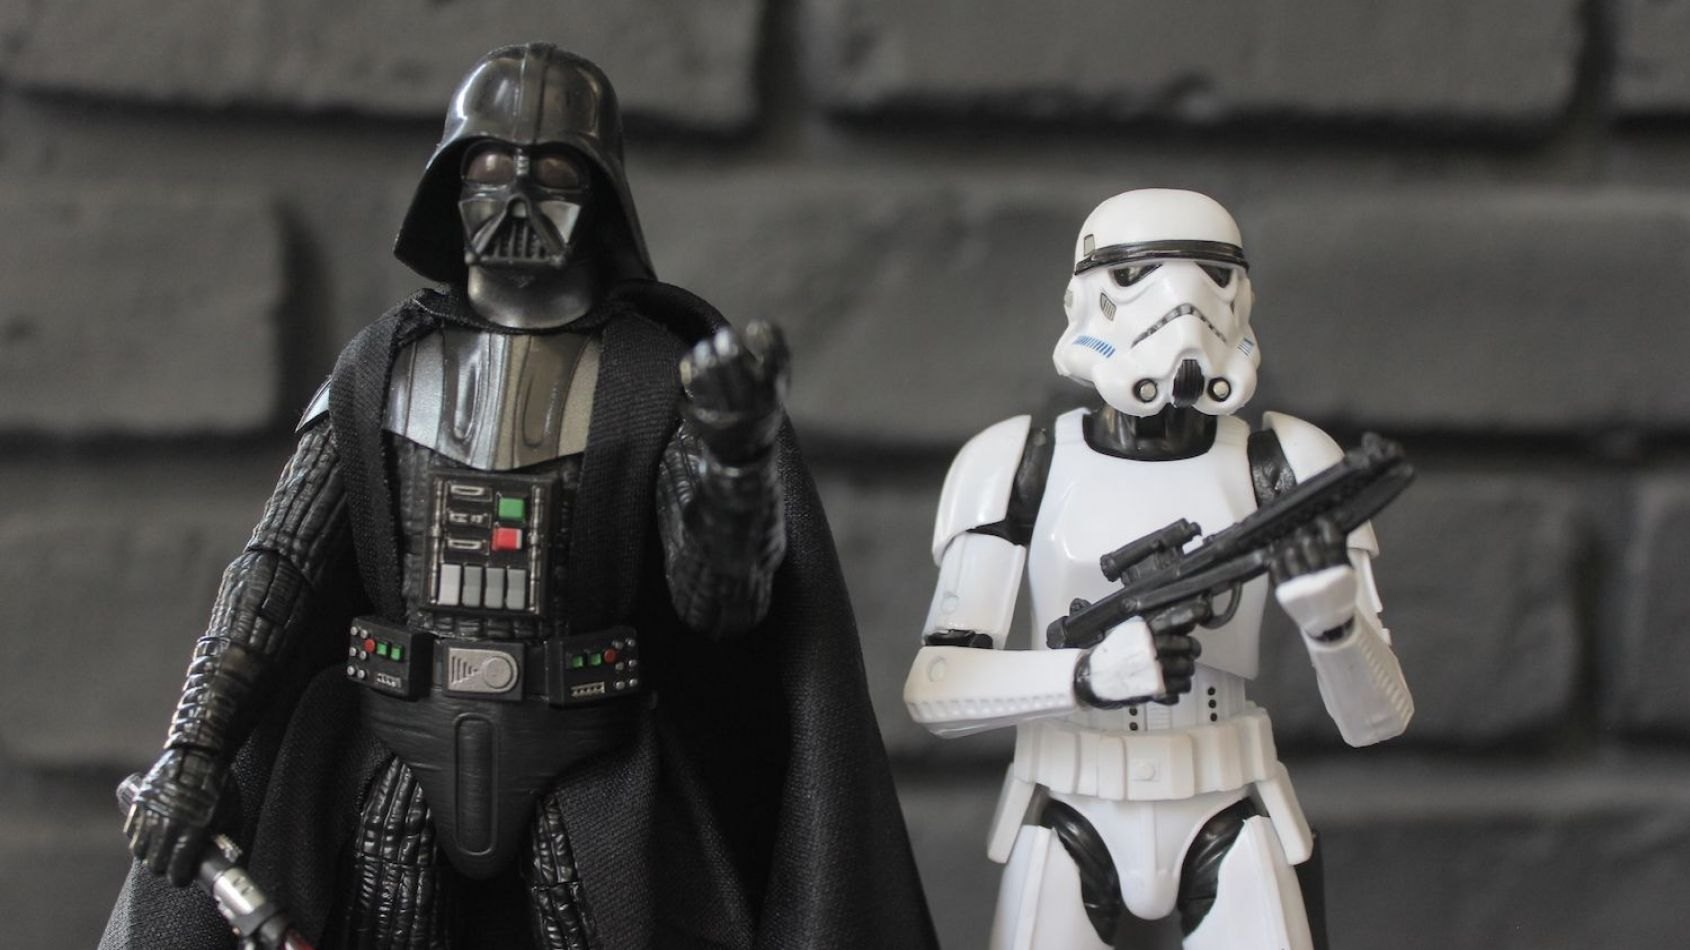 Review des Figurines Hasbro Black Series de Vador et du Stormtrooper